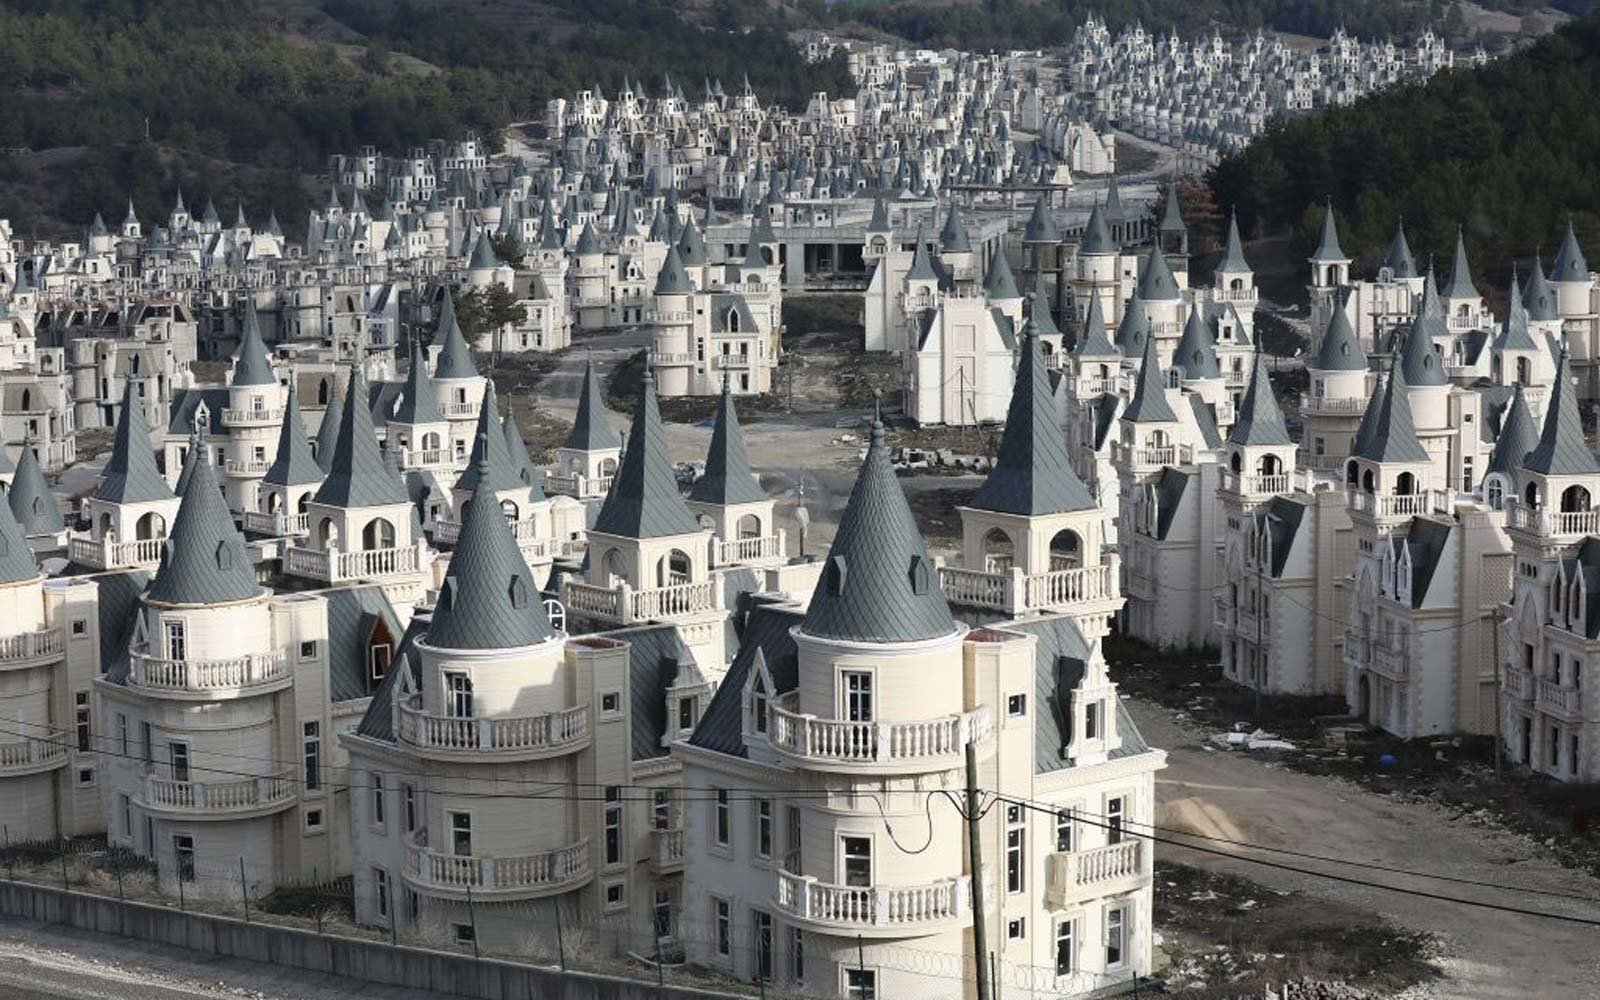 There's a $200-million Abandoned Village of Disney-like Castles in Turkey — Take a Look Inside